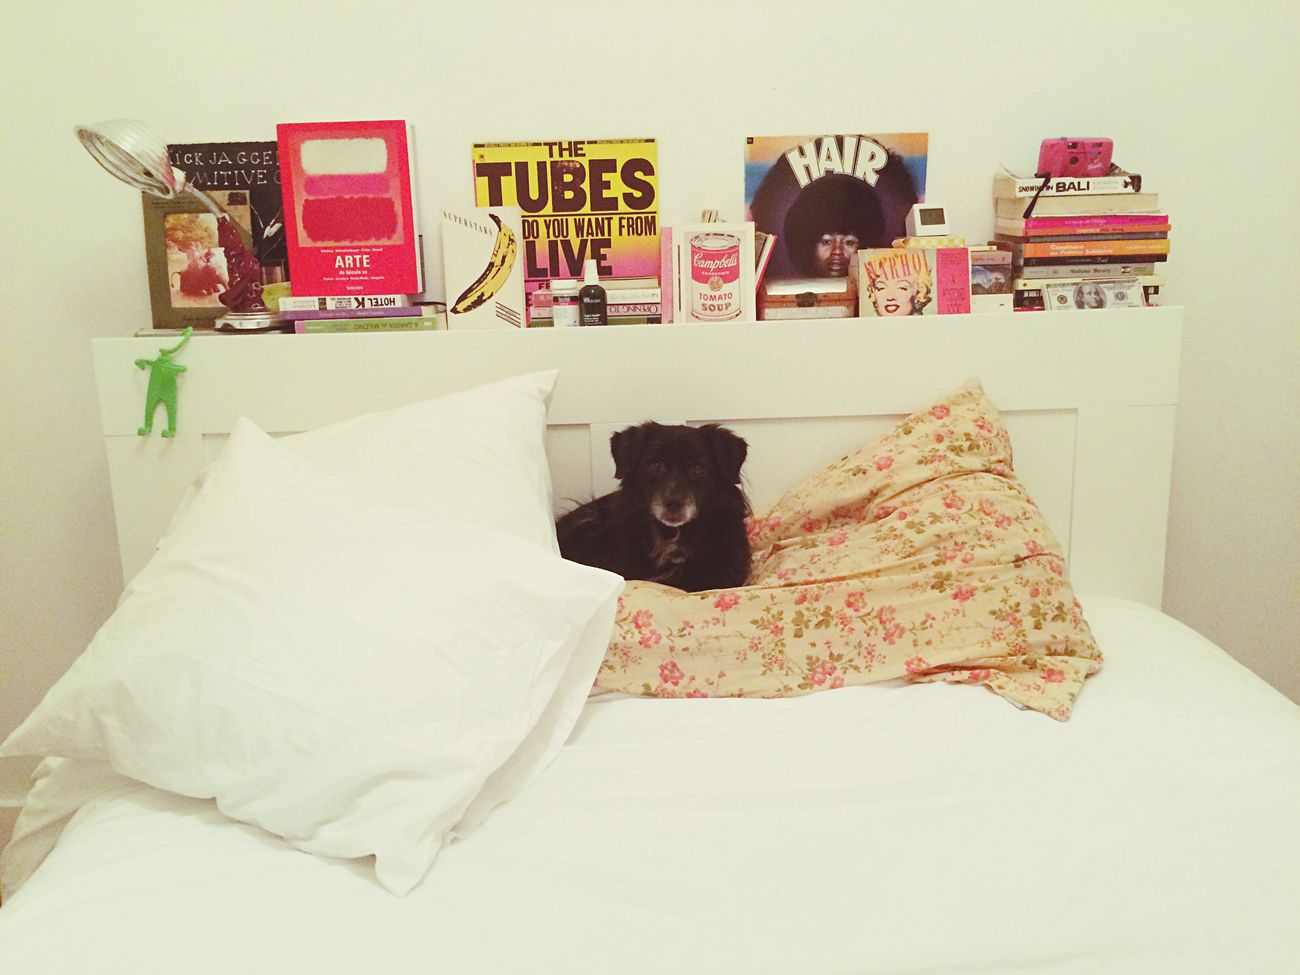 Someone is trying to steal my Bed // Polite Dog ... Or Not